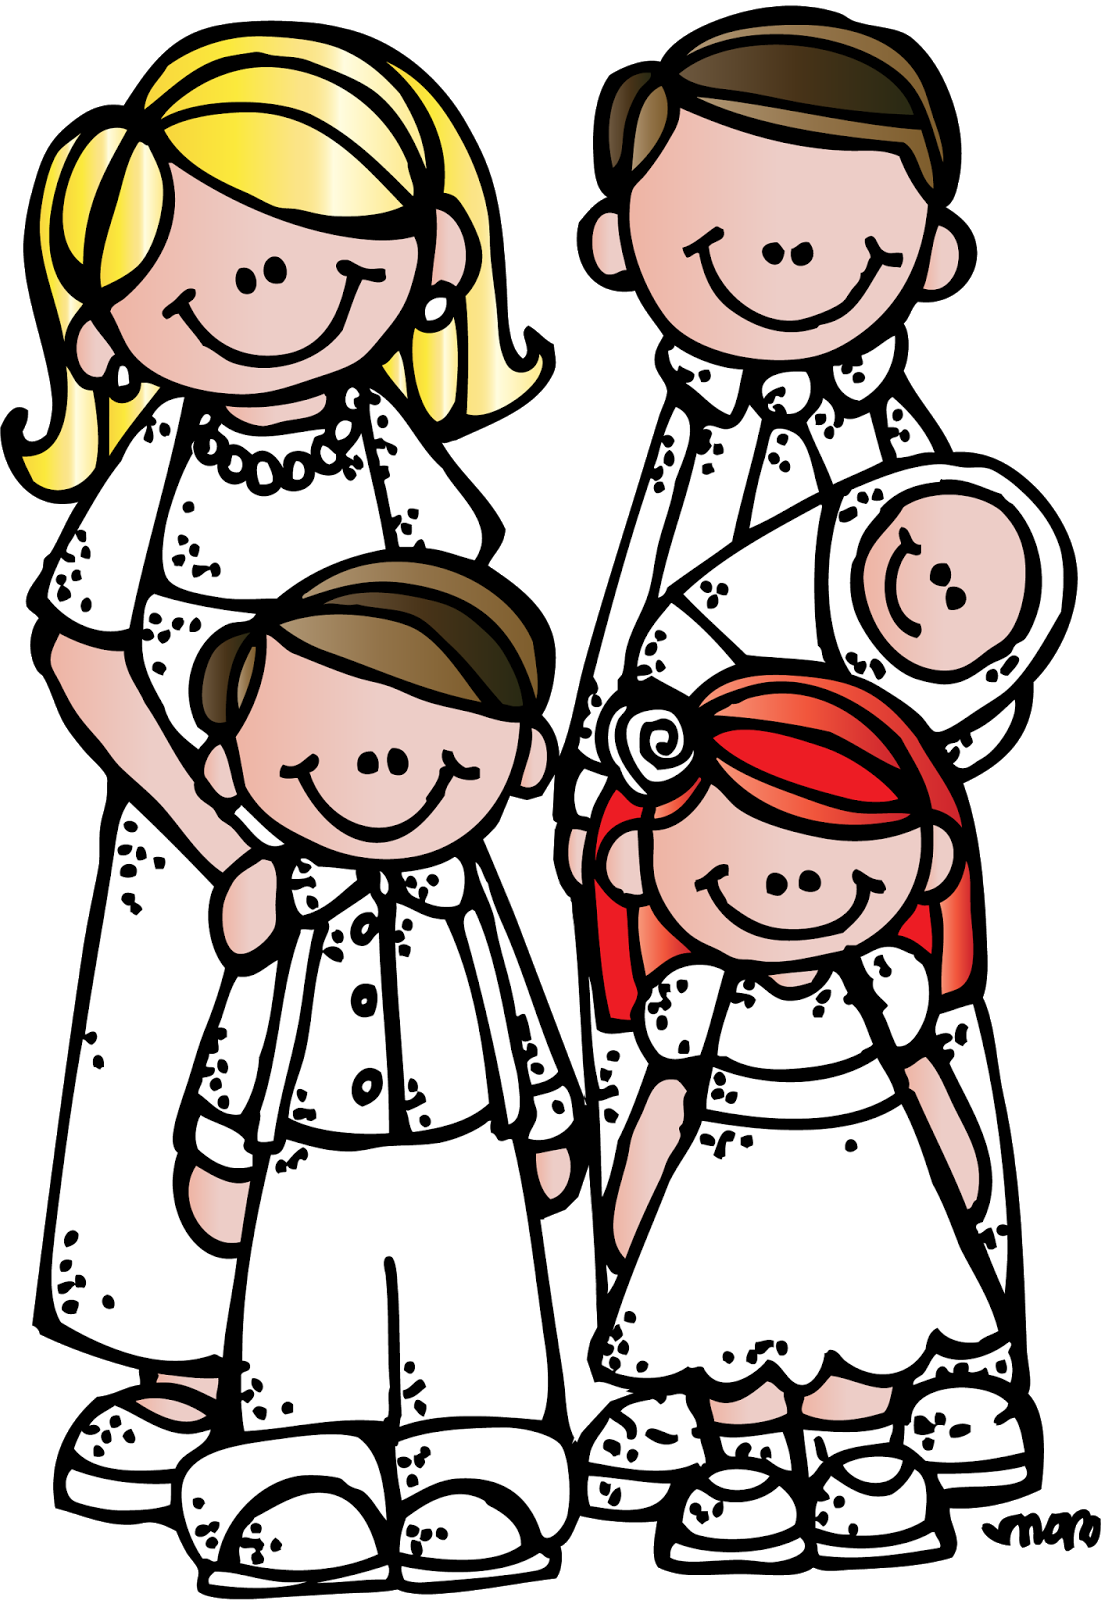 Melonheadz school house clipart black and white png transparent library Image result for melonheadz temple | imagenes animadas | Pinterest ... png transparent library